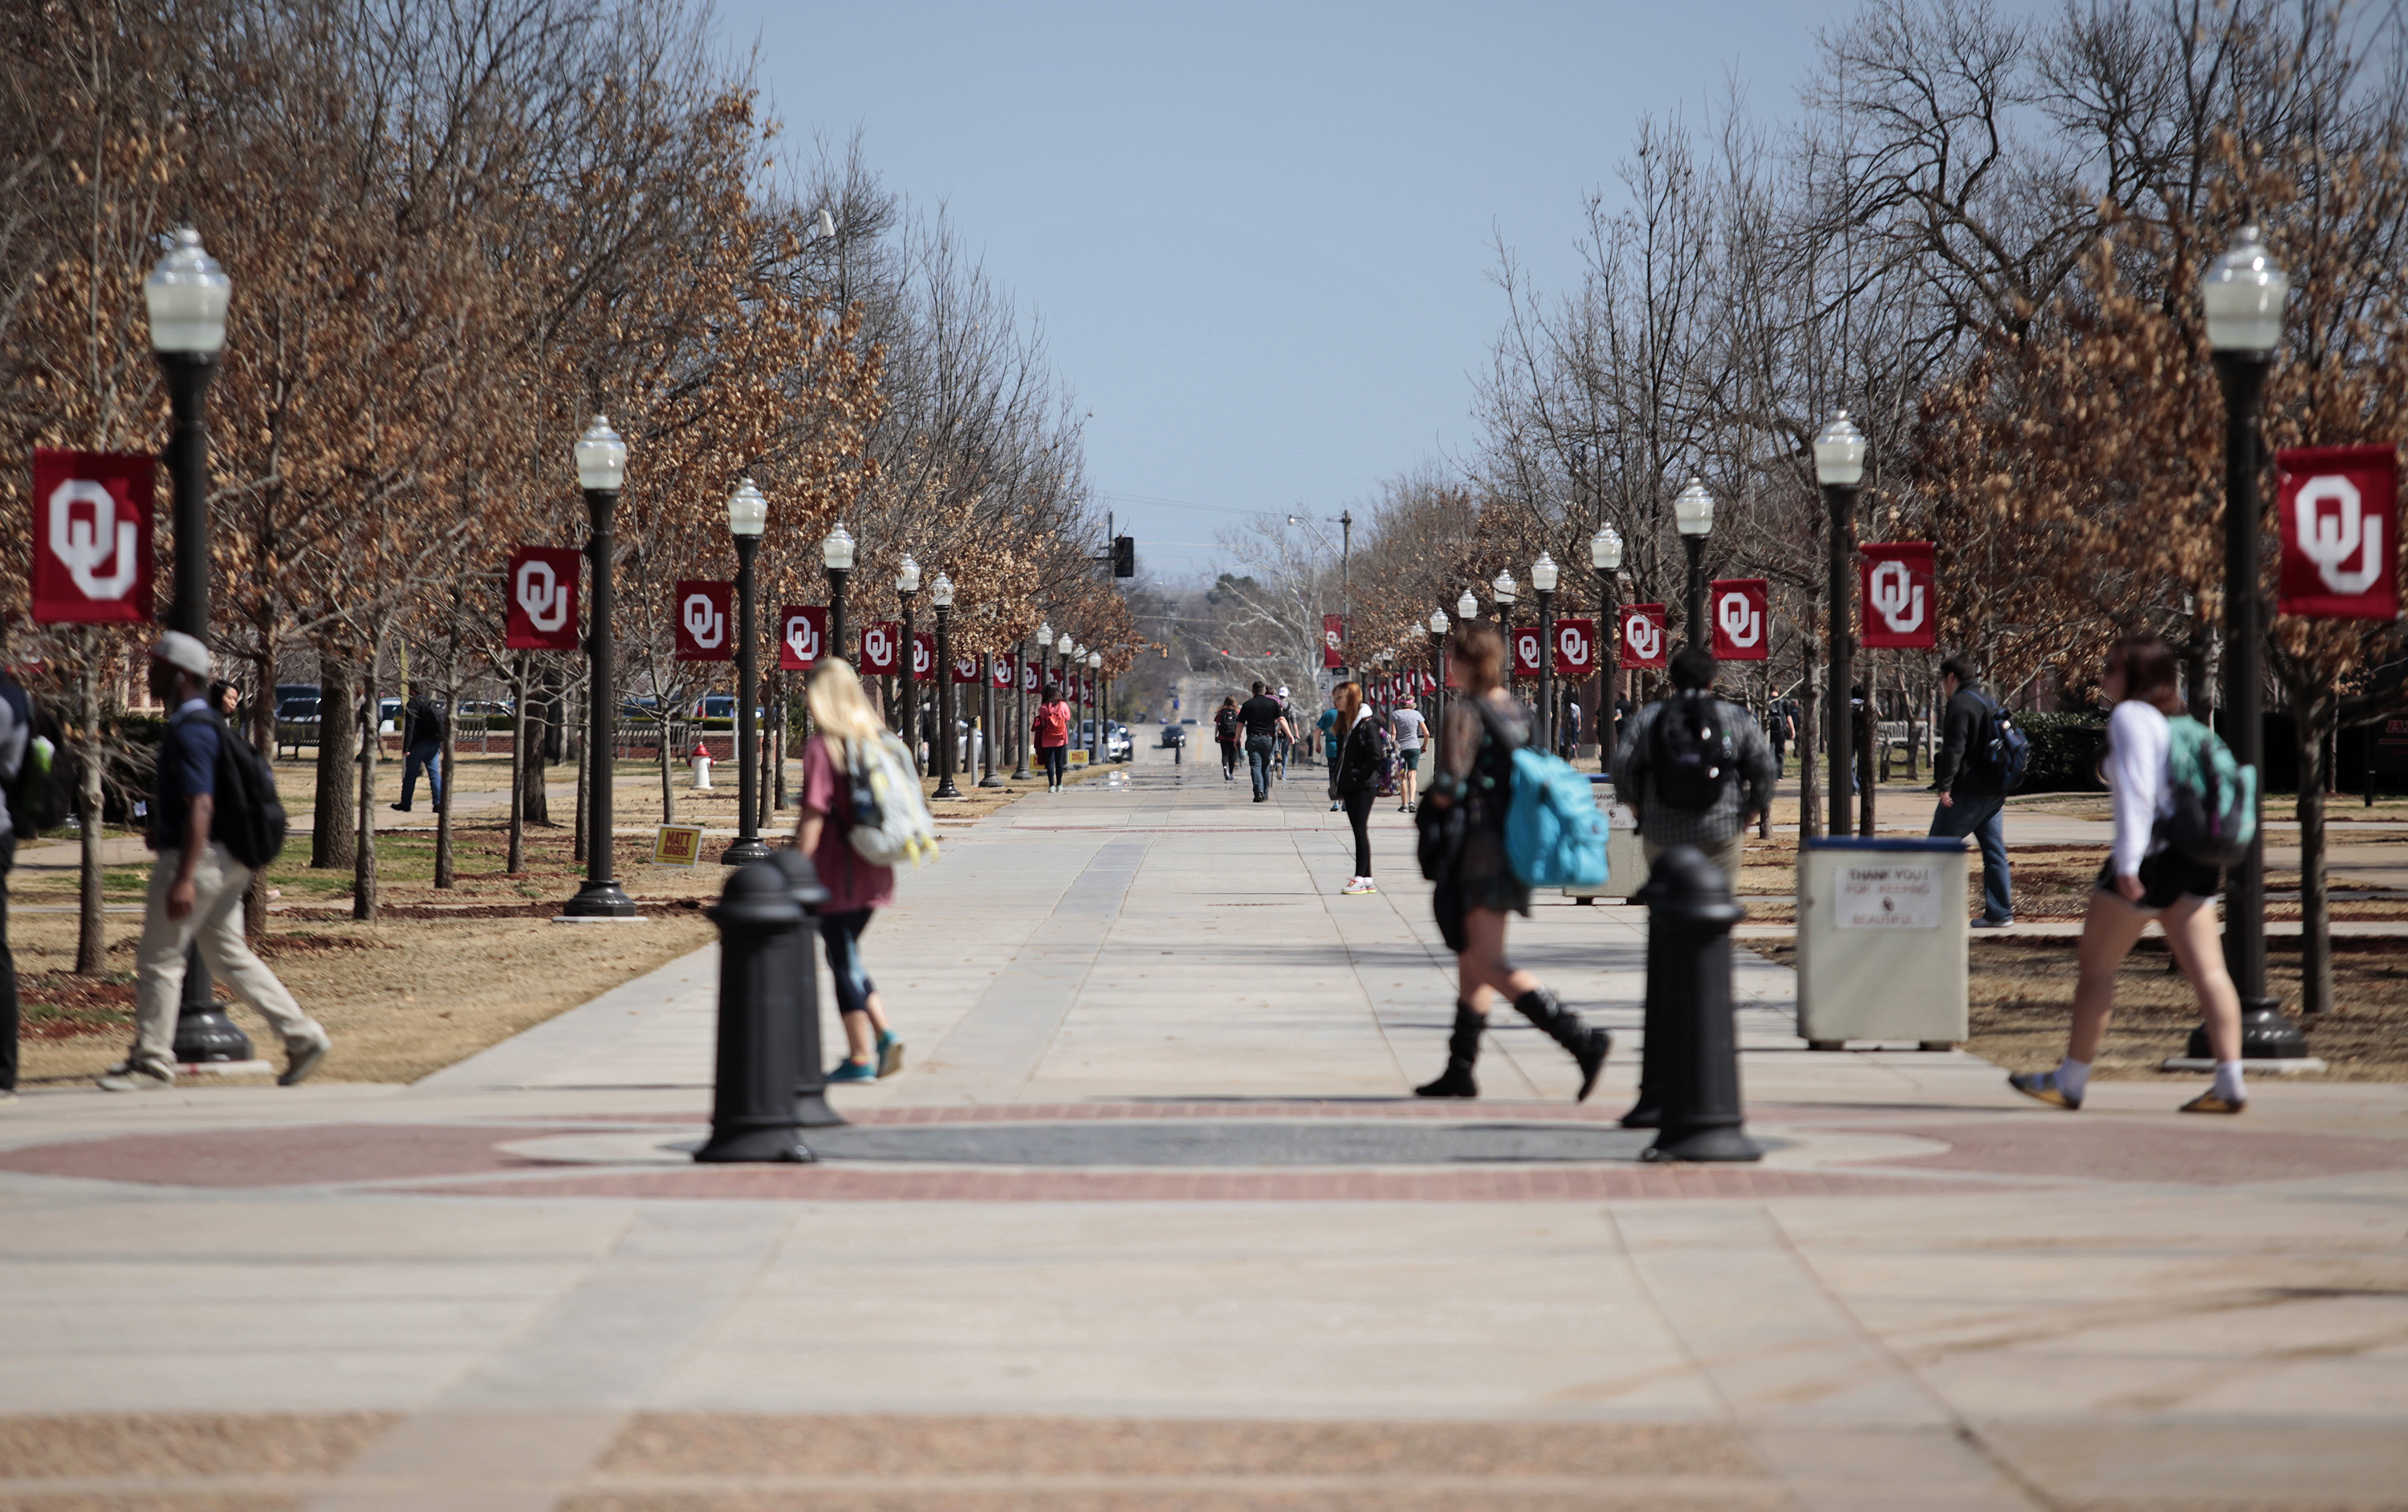 Students walk on campus between classes at the University of Oklahoma on March 11, 2015 in Norman, Oklahoma.